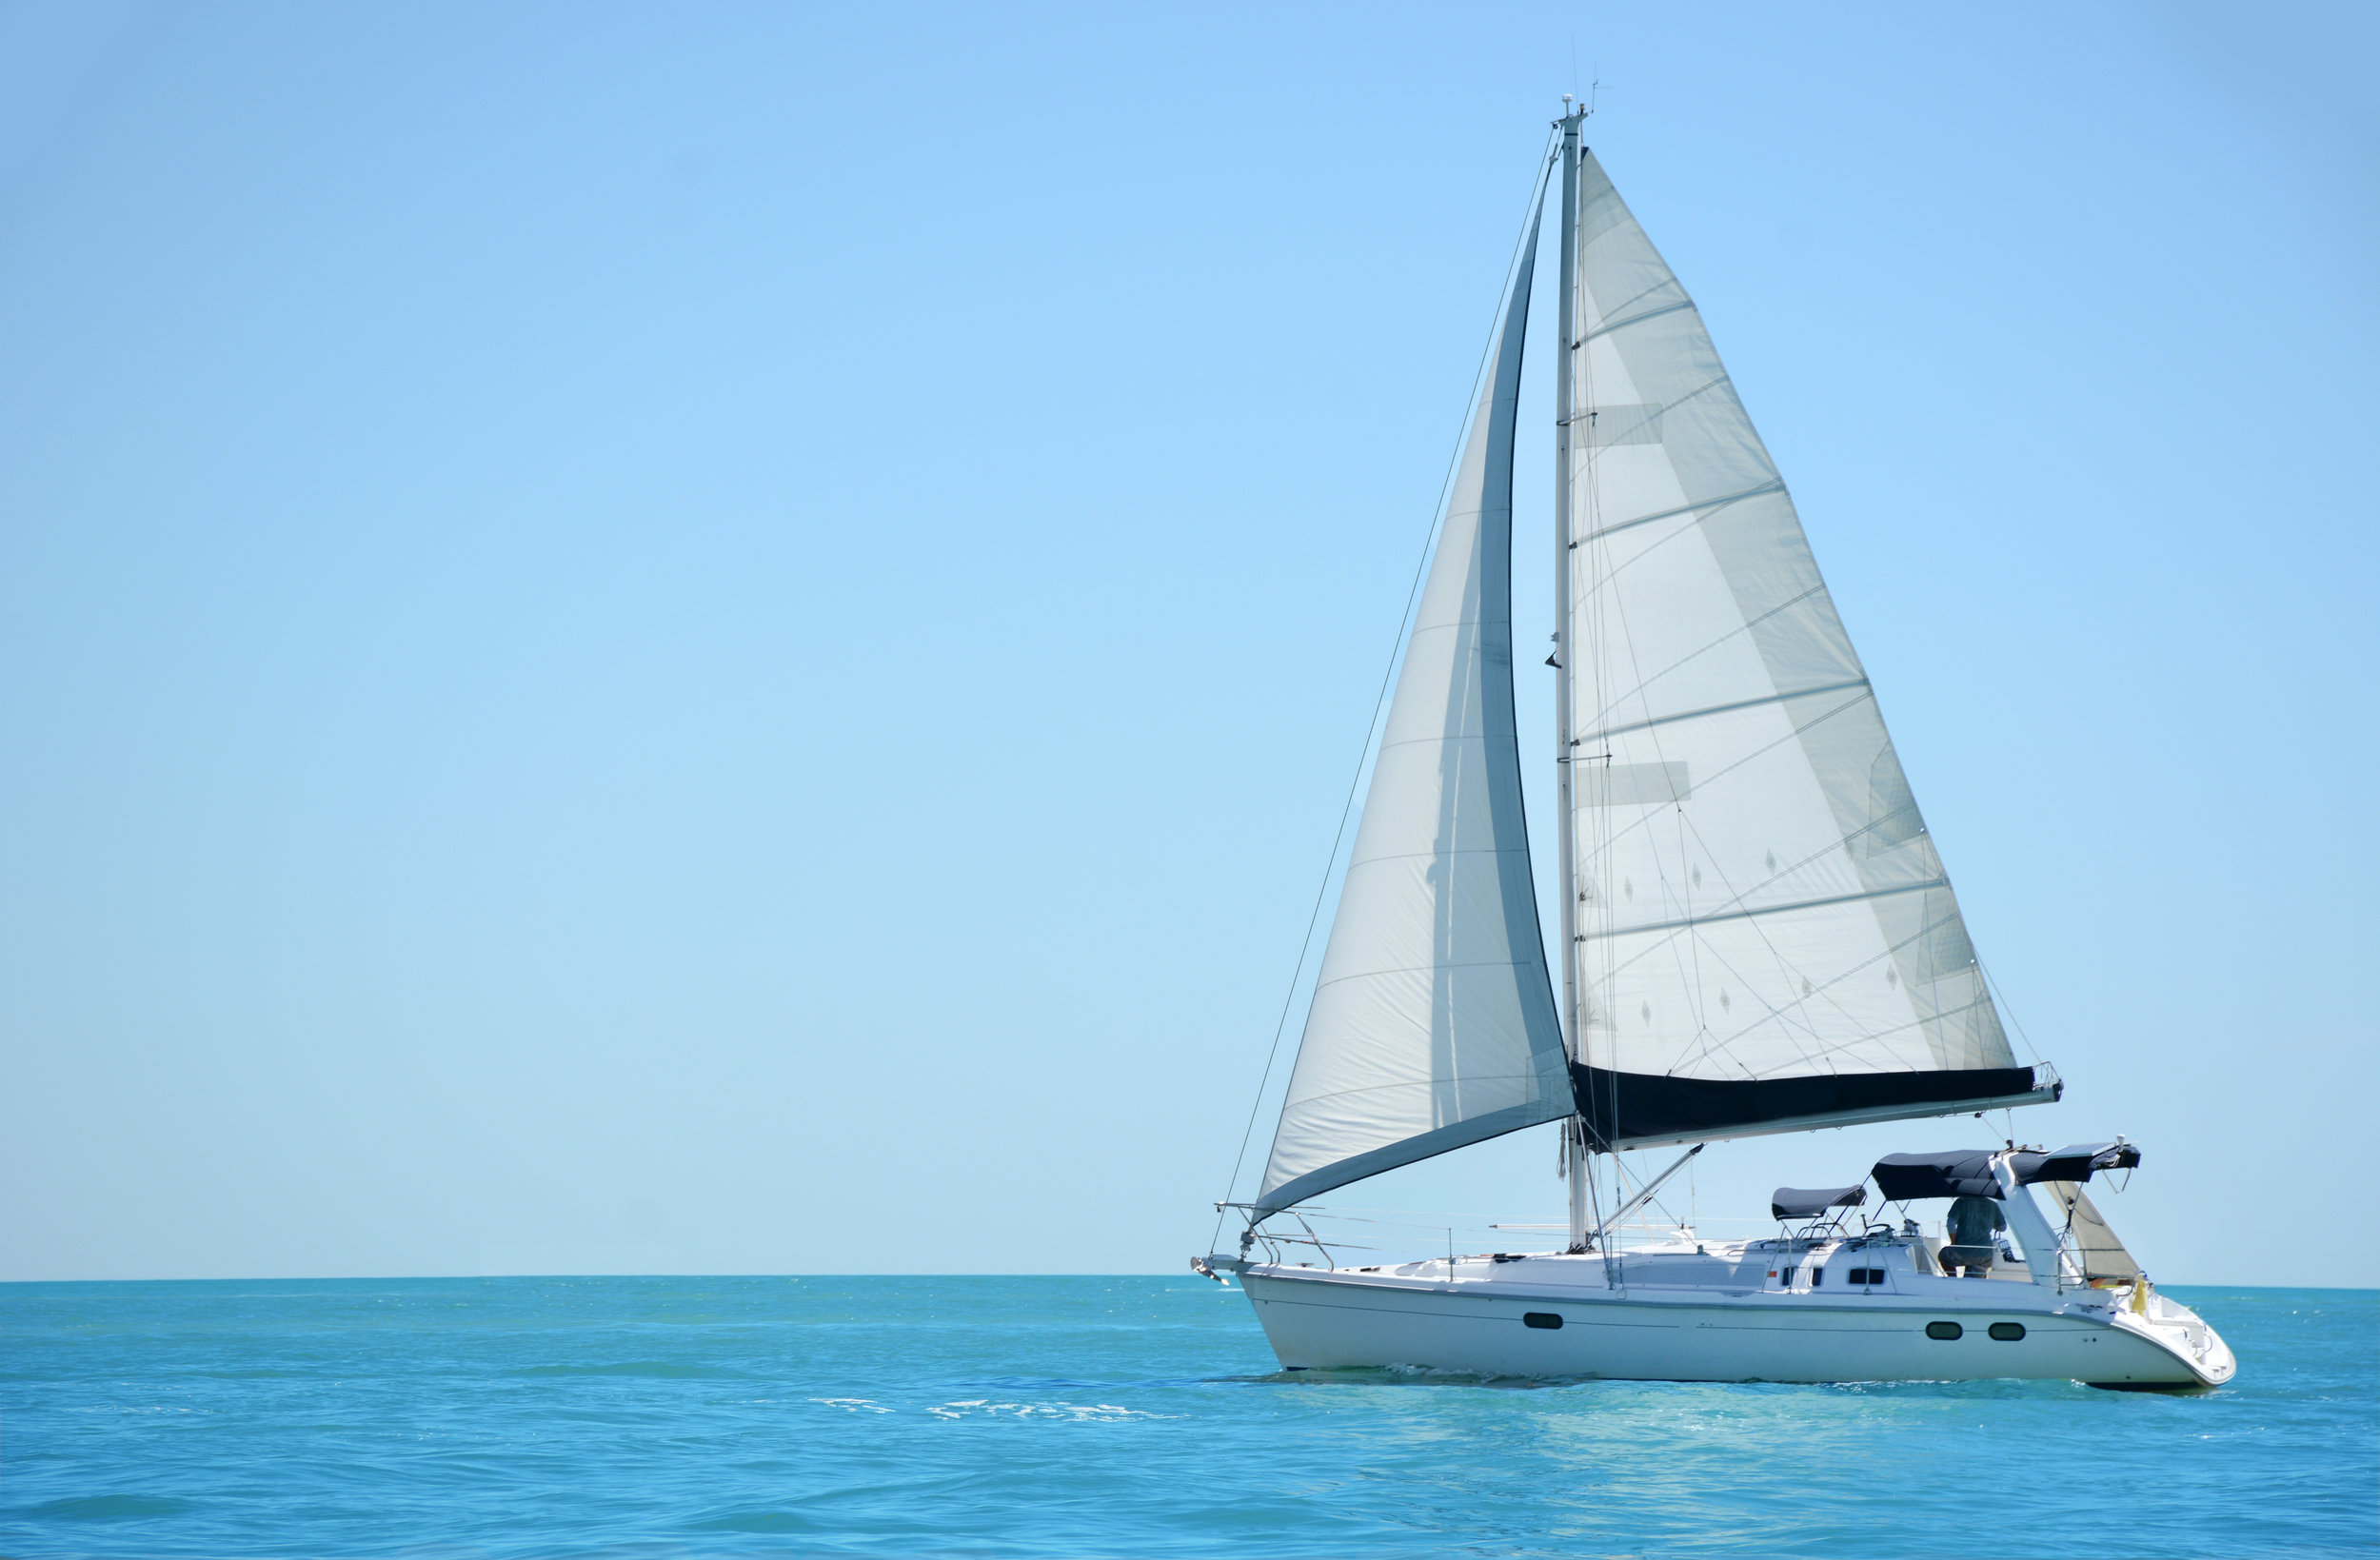 A sailboat sailing in the ocean